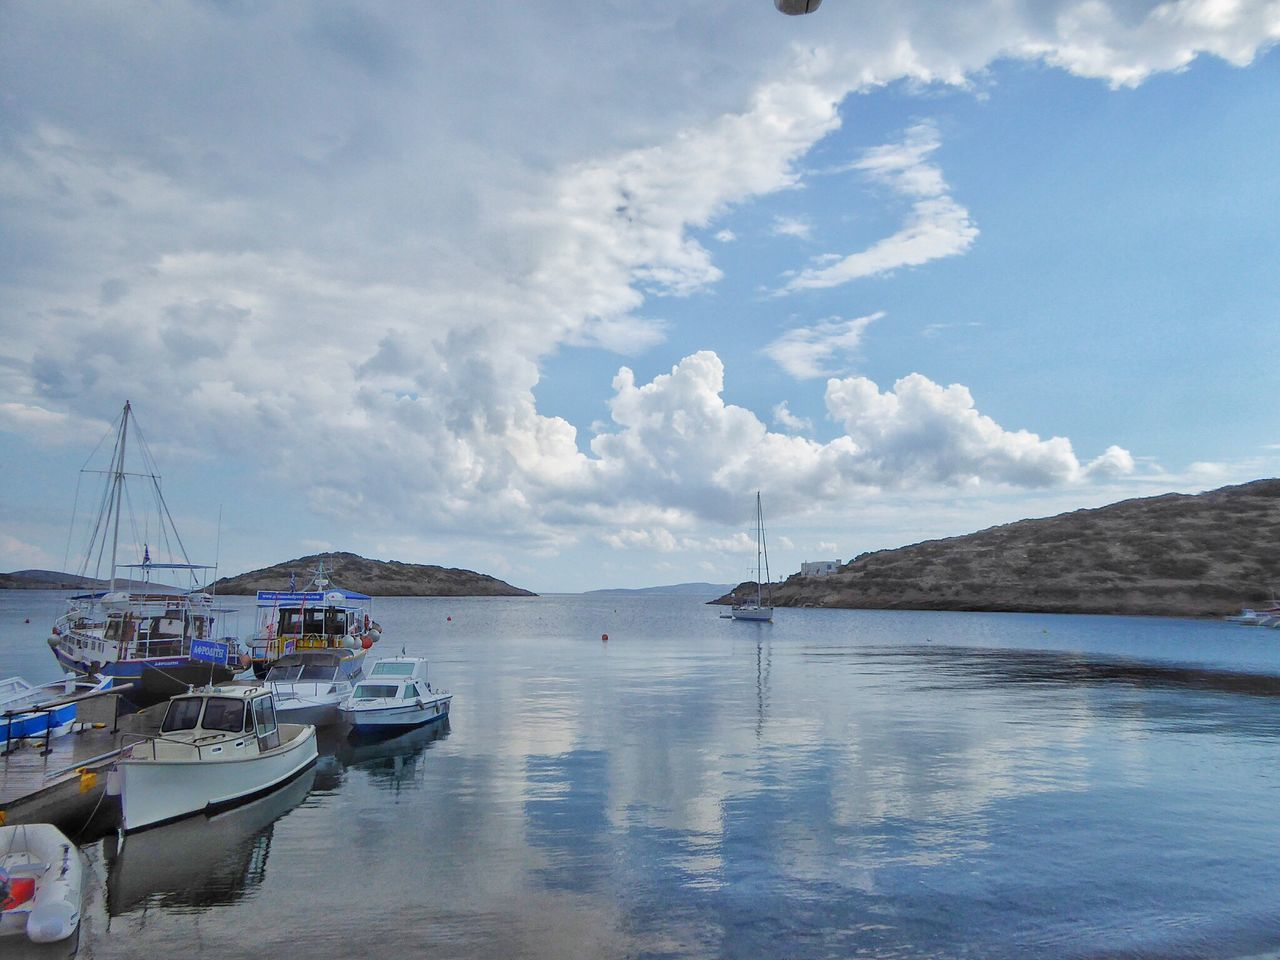 Marathi Greece GREECE ♥♥ Dodecanese Seascape Seascape Photography Seascapes Islandlife Island Life